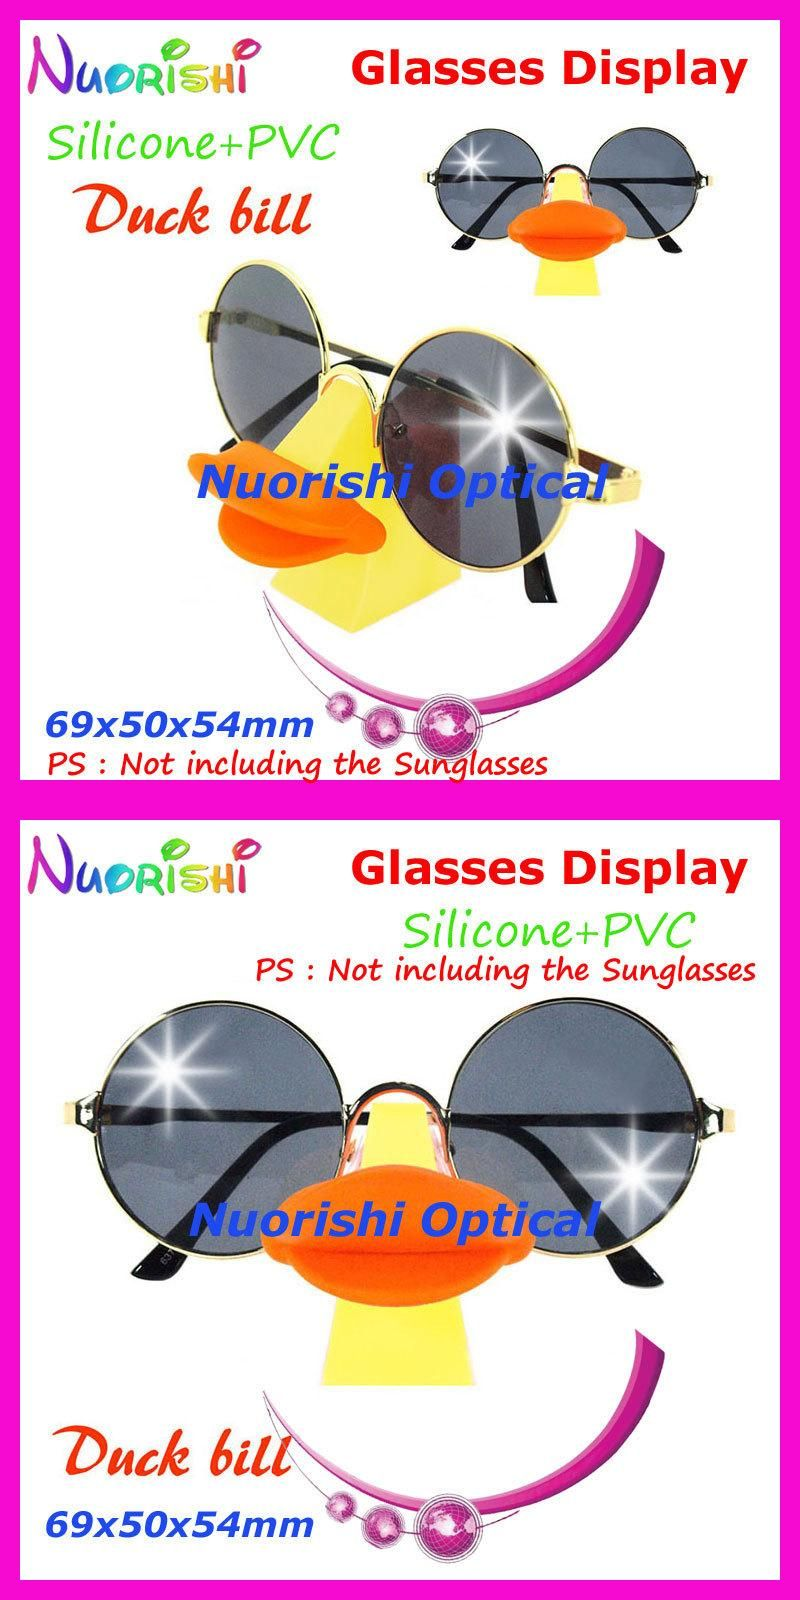 0f3700949119 Funny Duck Bill Design Eyeglass Sunglasses Glasses Props Shelf Display  Stands Holder Store Decoration CK46 Free Shipping